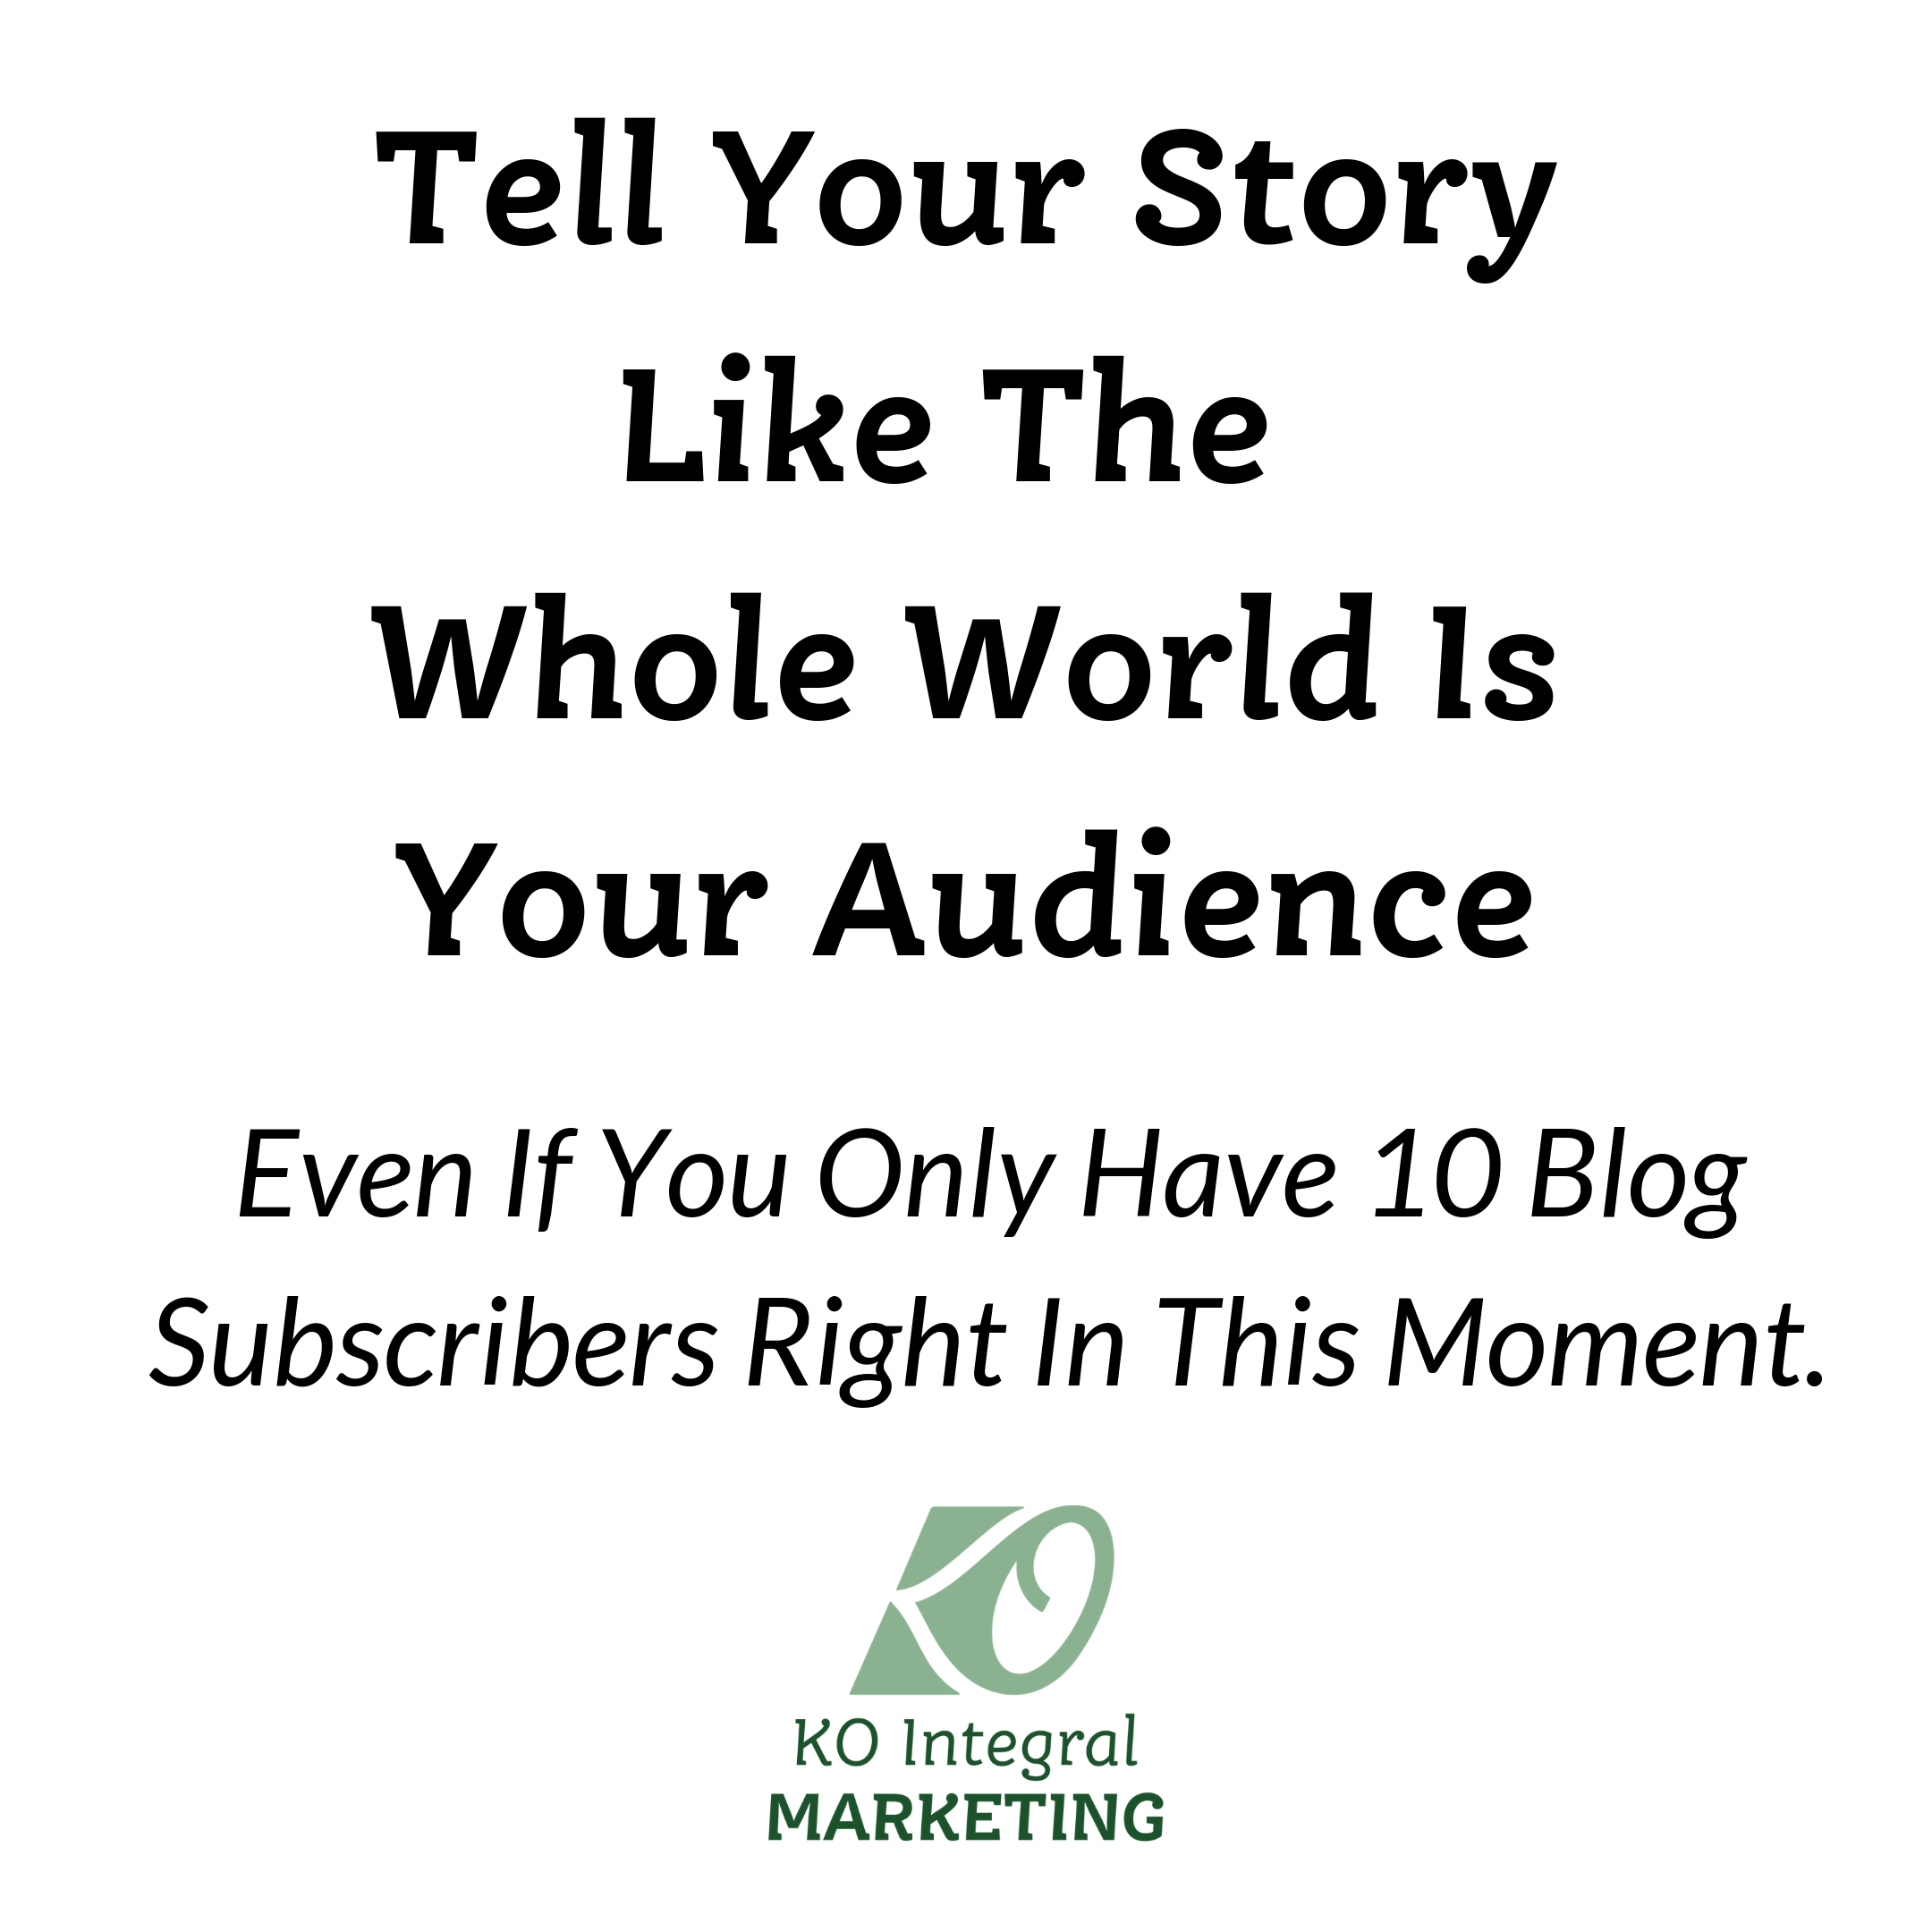 Tell Your Story Like The Whole World Is Your Audience.png